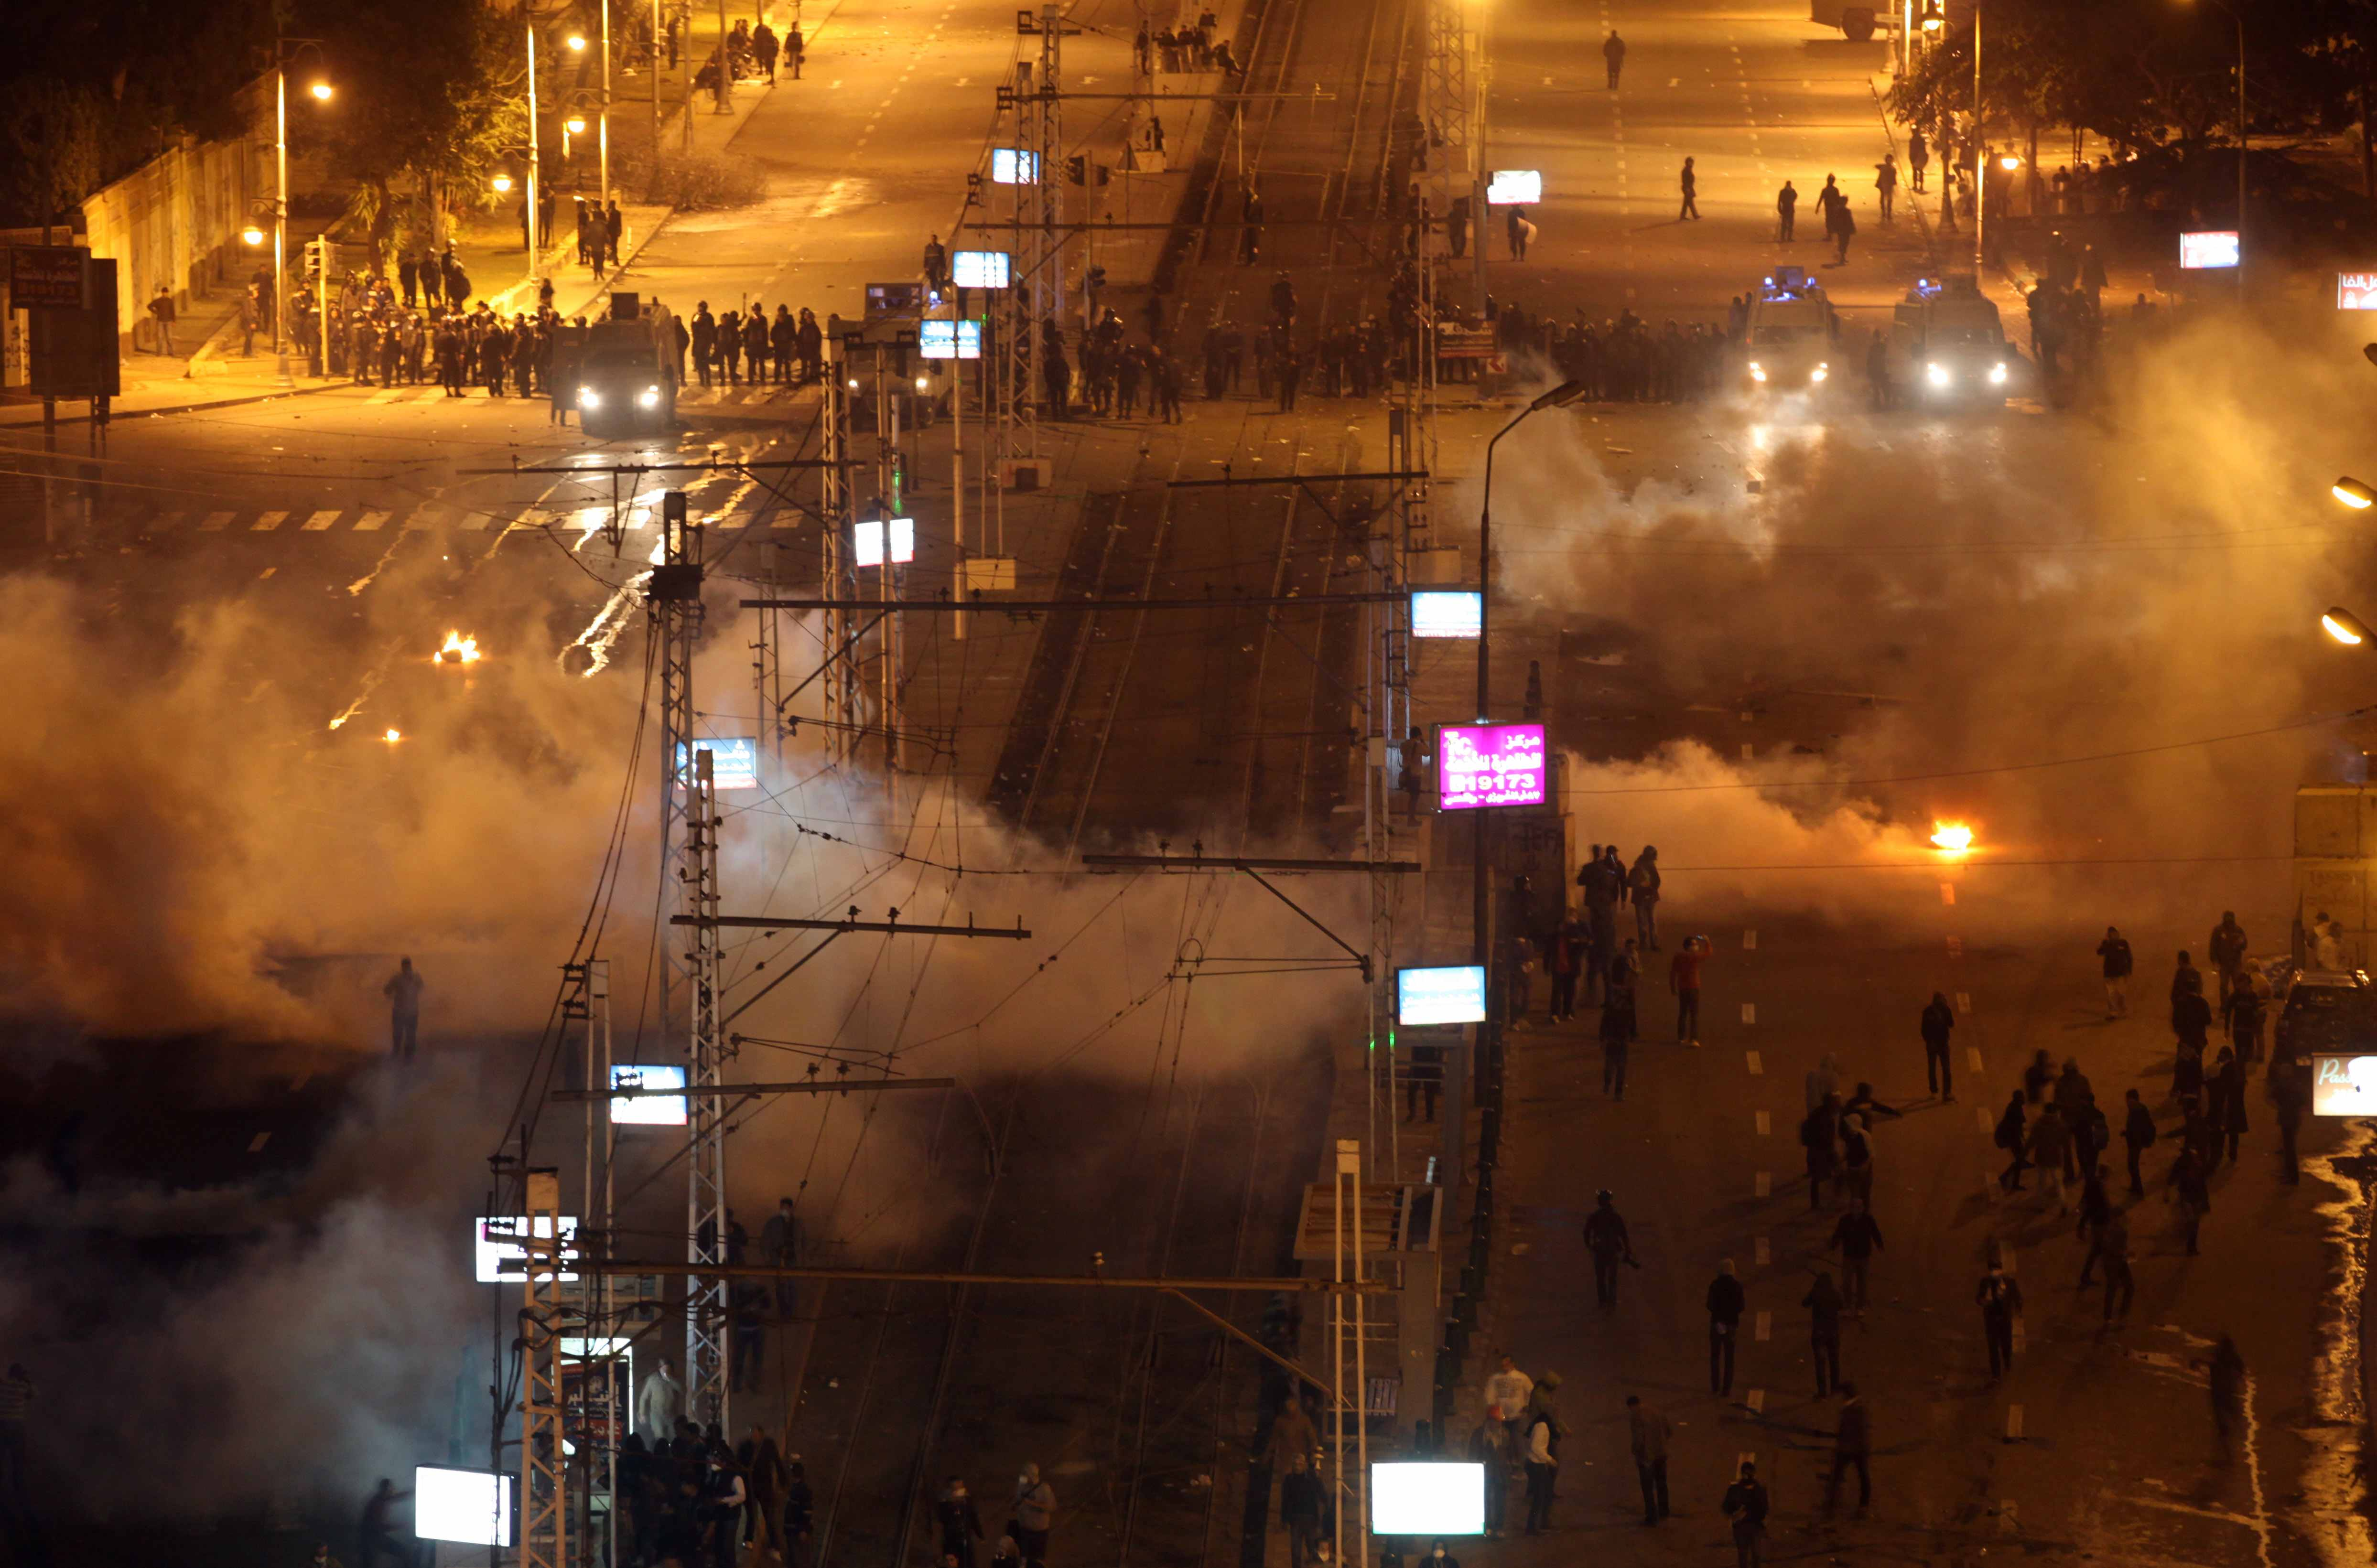 Egypt on high alert as protesters mark anniversary of Hosni Mubarak's ouster